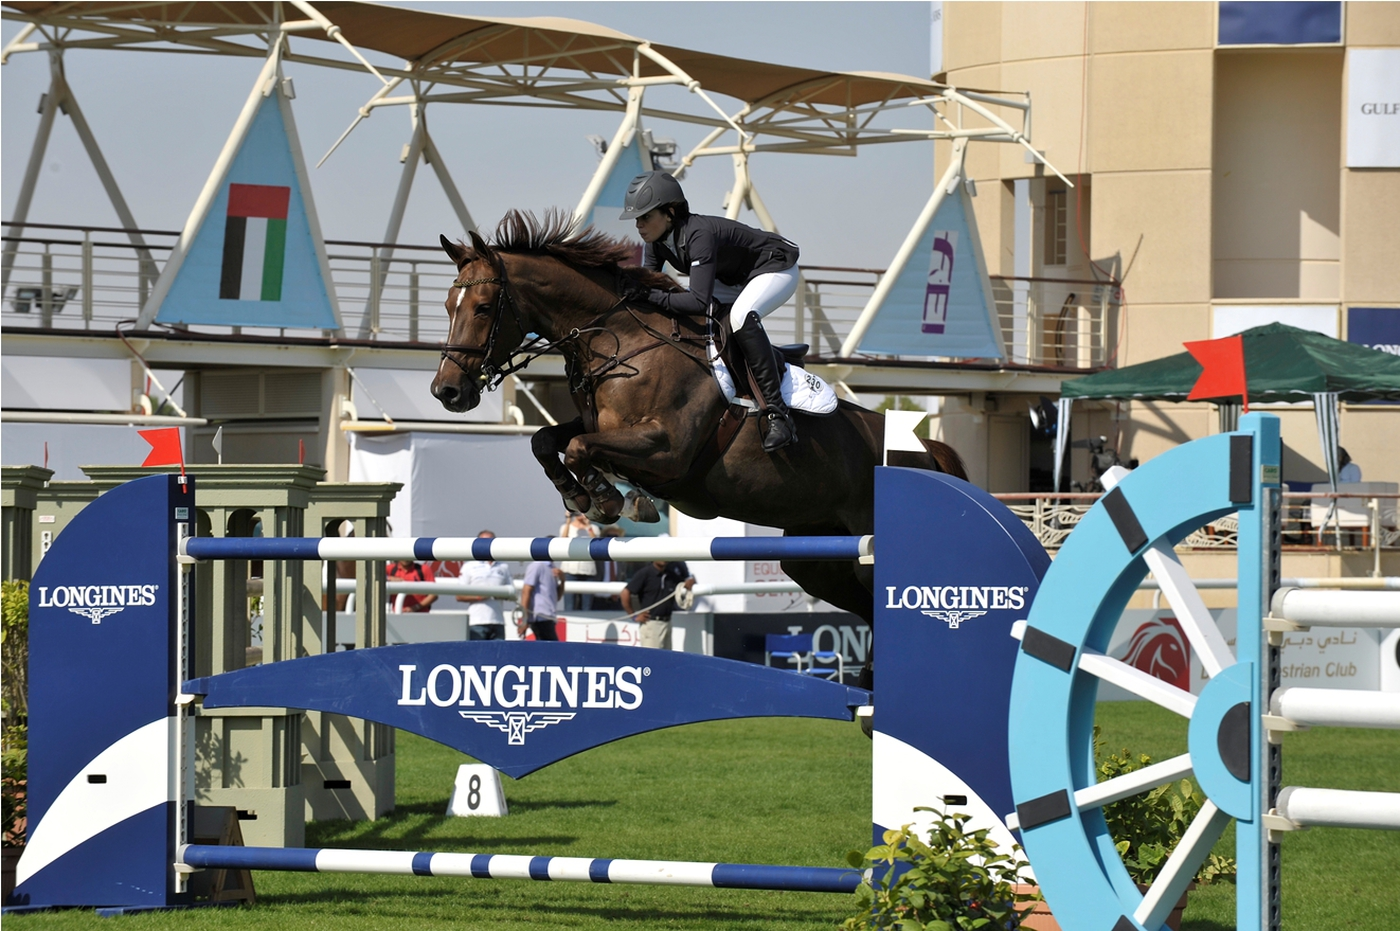 Longines Flat Racing Event: Longines proclaims long-term partnership with the elite Meydan Group 5